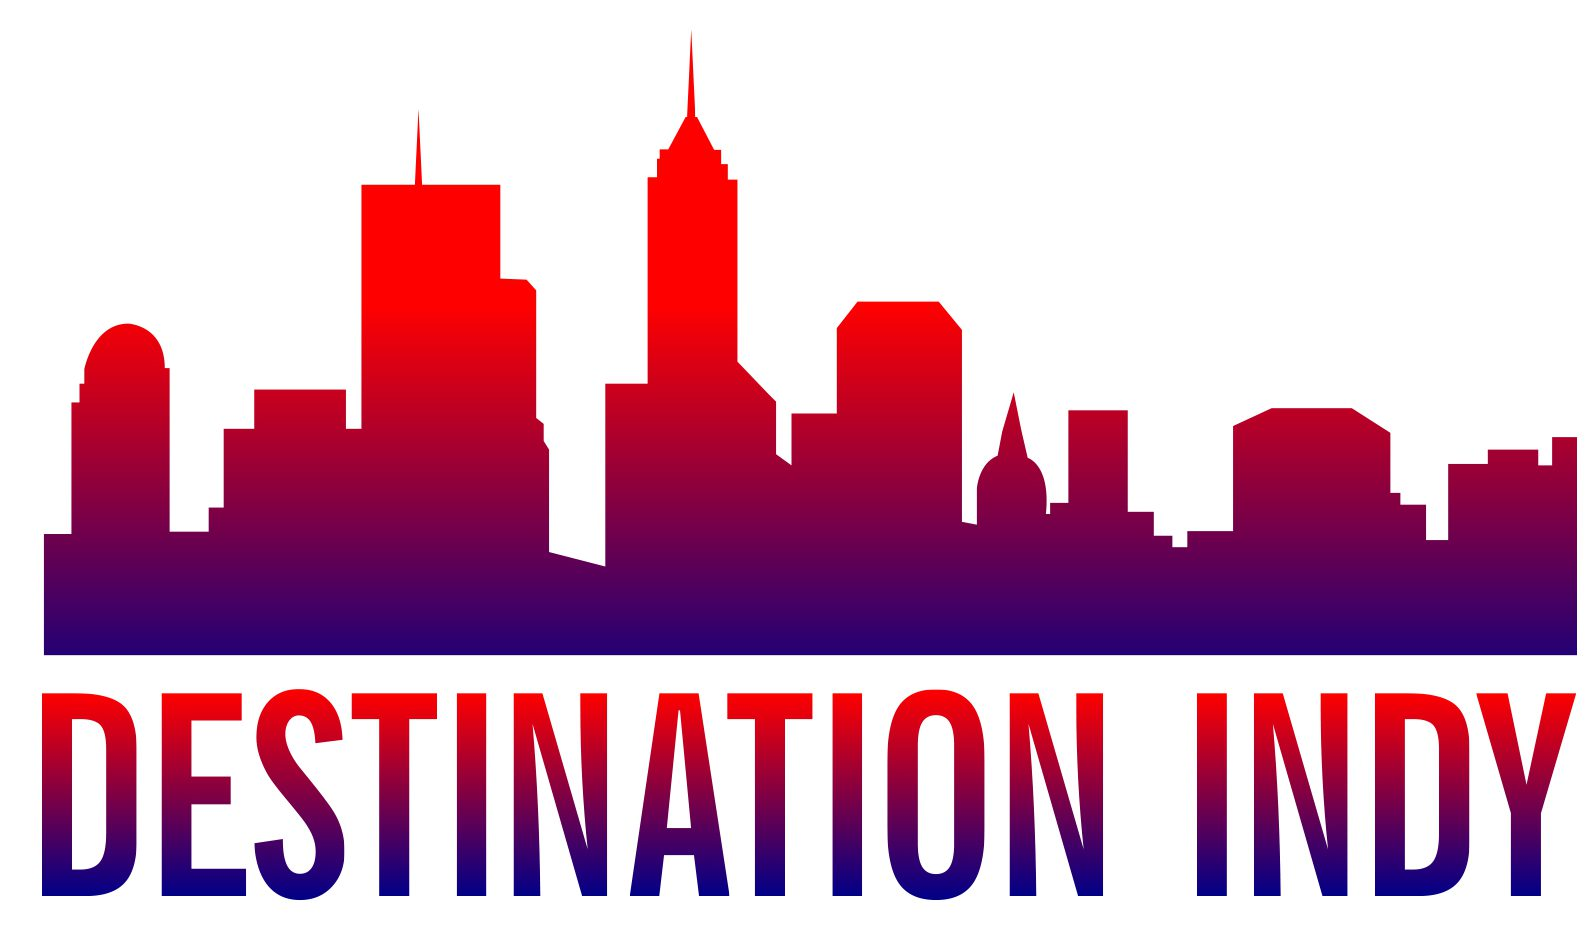 Destination Indy logo